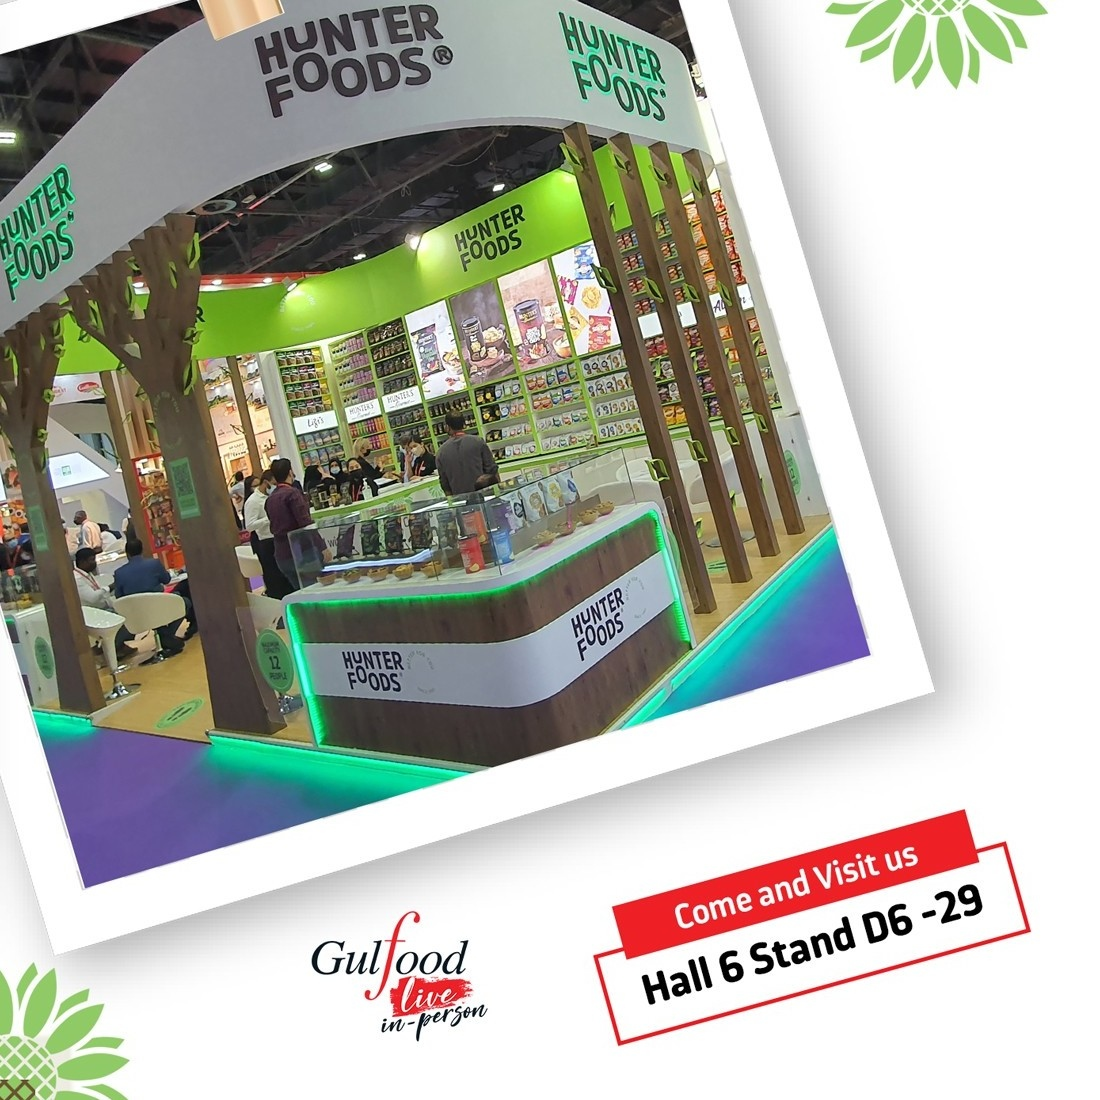 Today is the last day! Come and visit us @Gulfood ! Discover & taste our new adventurous flavours live and in-person in Hall 6 at our stand, D6-29! ⁠ #gulfood #gulfood2021 #hunterfoods #betterforyou⁠ #Dwtc #huntersgourmet #innovation #foodporm #instafood